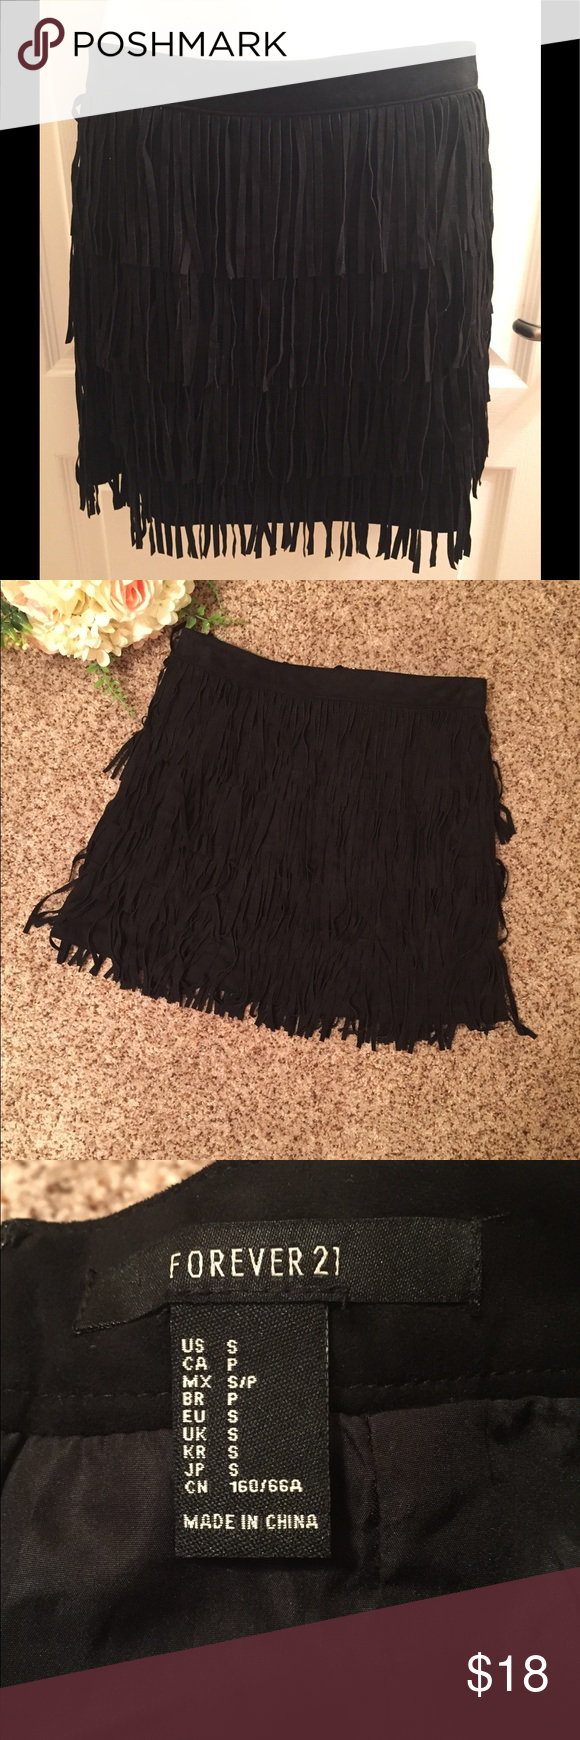 88ac5c53ee 🛍WKND Sale🛍 F21 Fringed Faux Suede Skirt NWT Forever 21 Fringed Faux  Suede Skirt